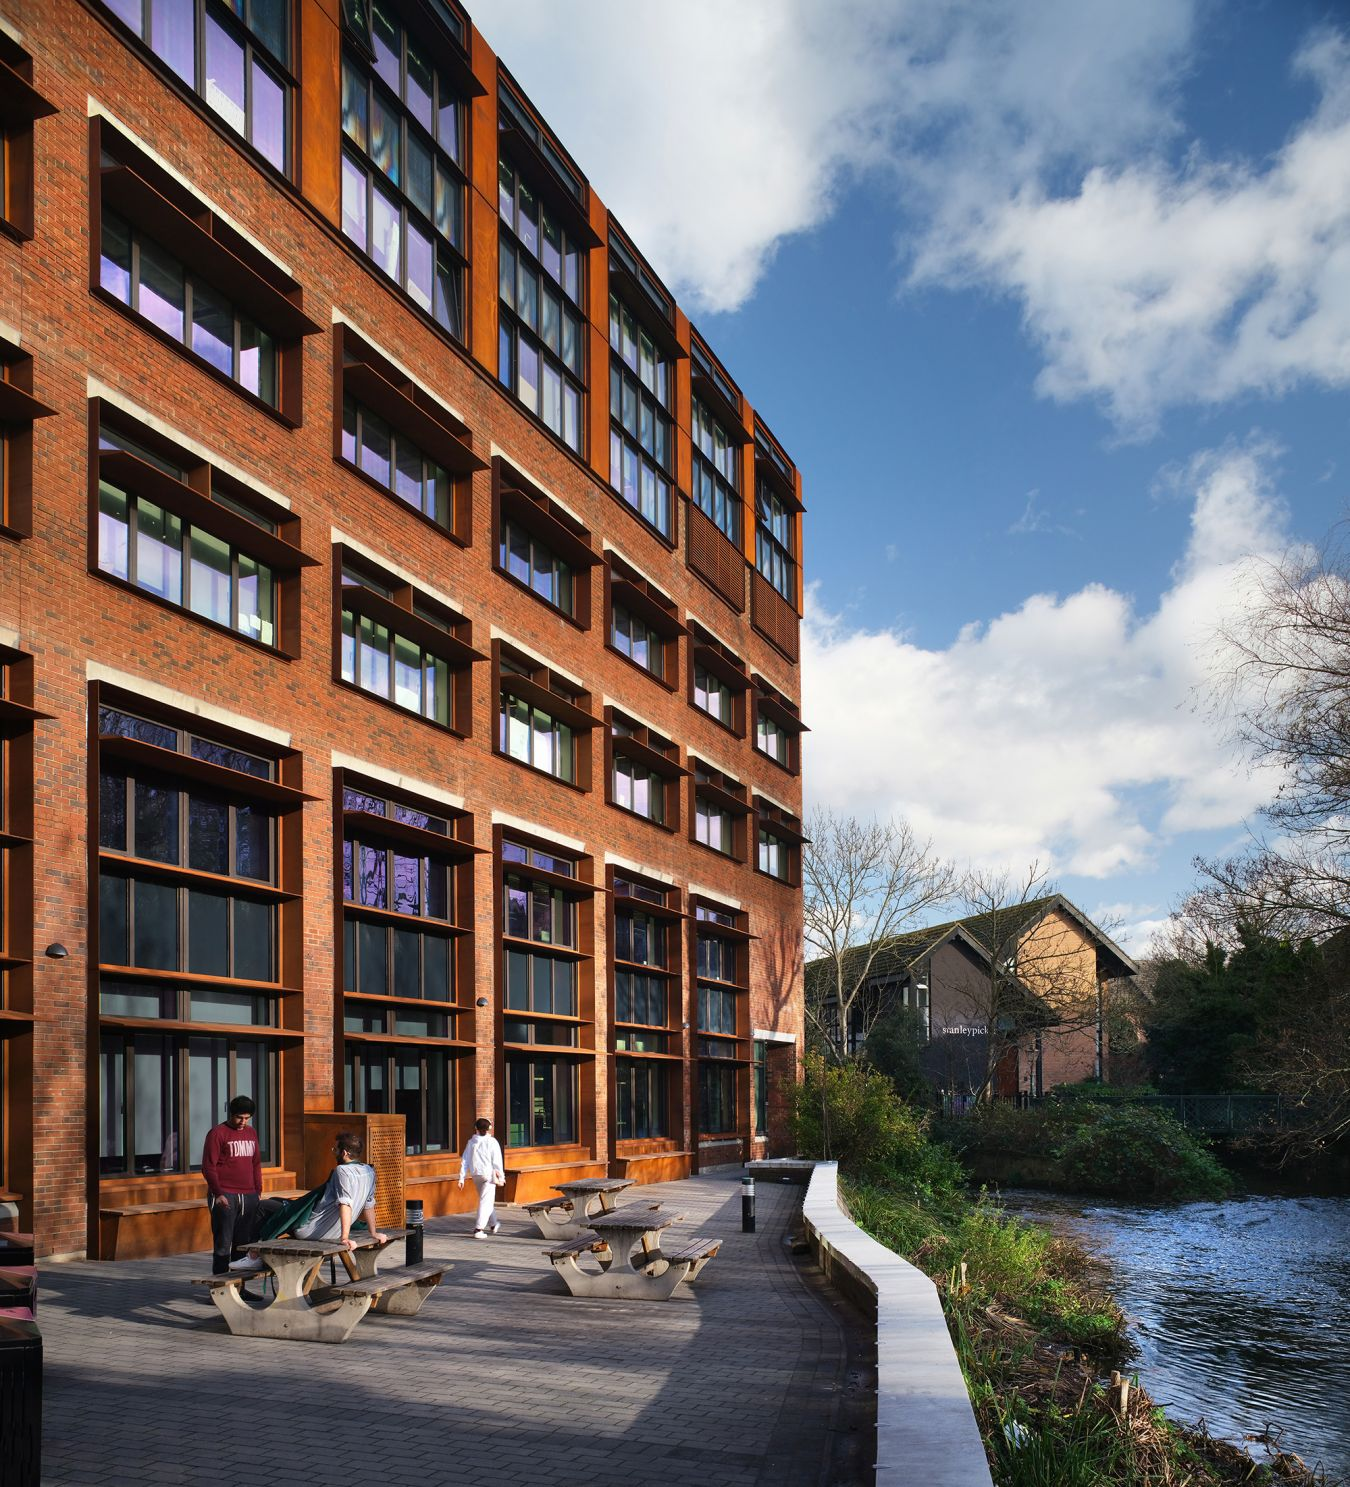 The Mill Street Building is on course to achieve a BREEAM outstanding rating for sustainability, delivering a 52% reduction in carbon emissions credit-Philip Vile